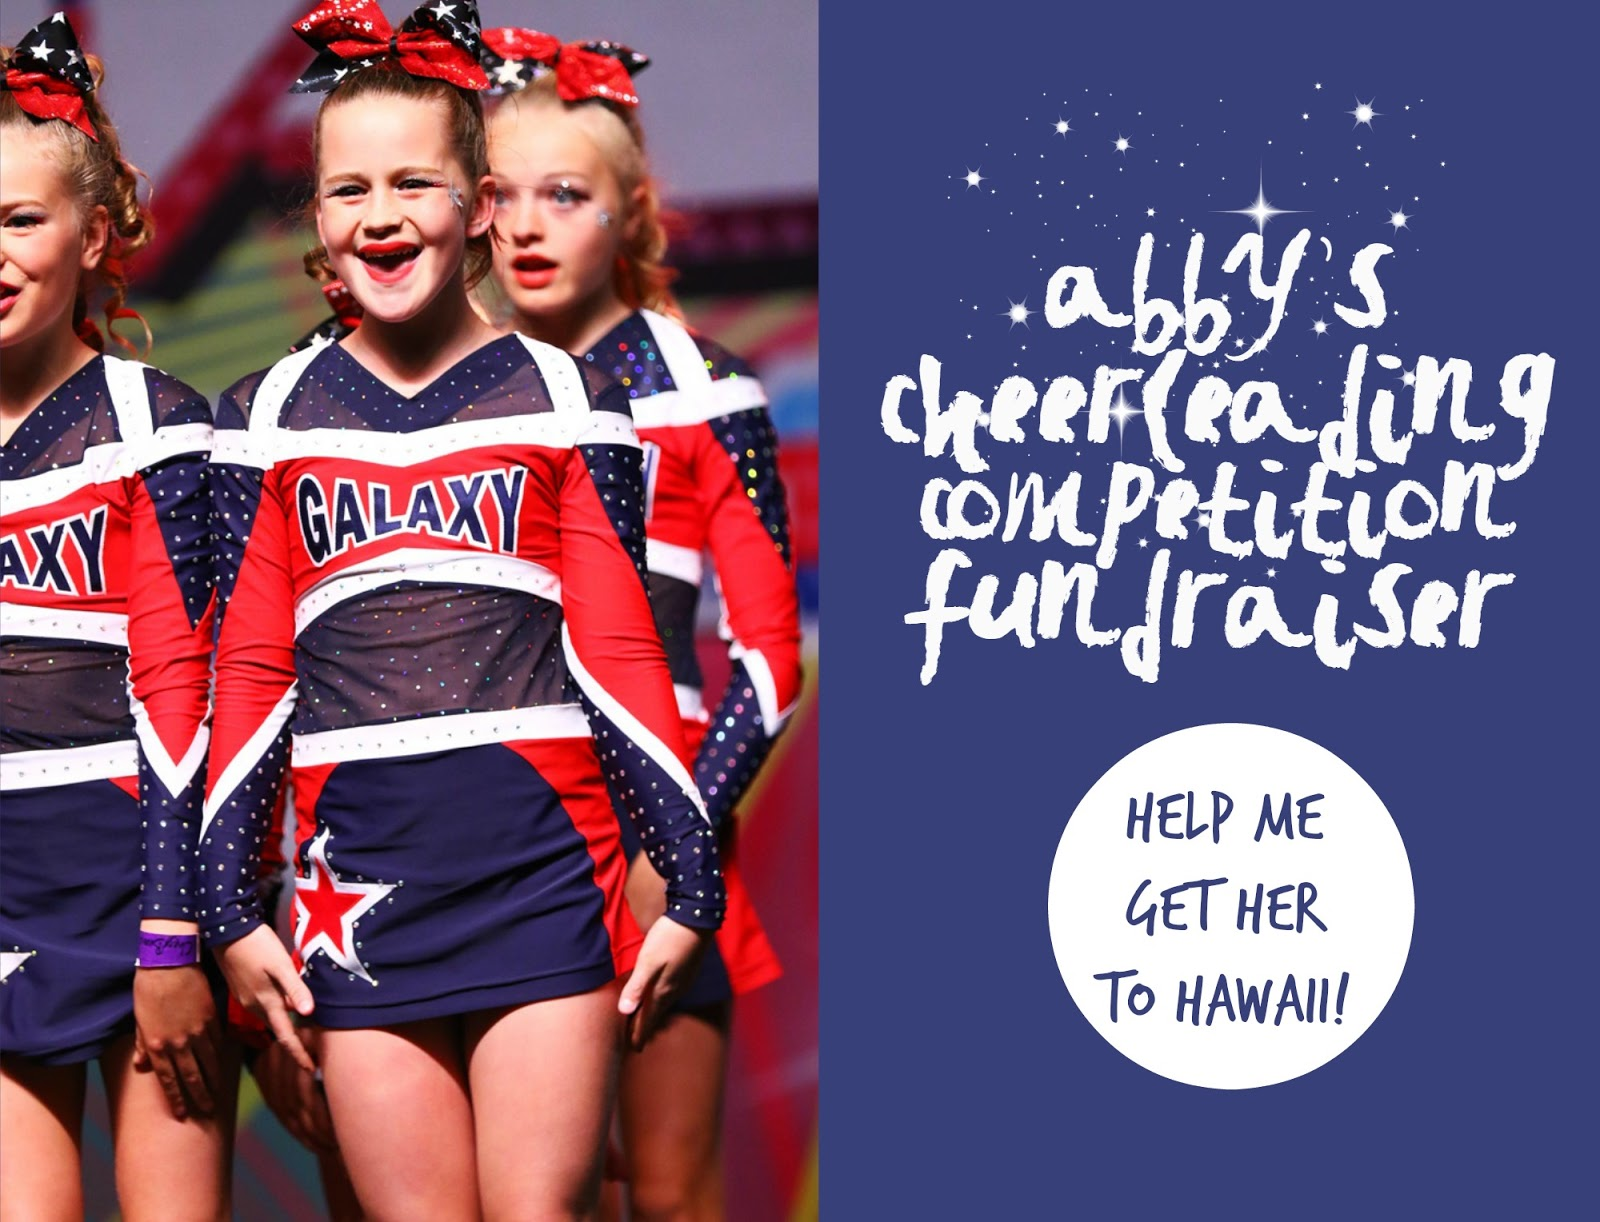 Help me get Abby to Hawaii for her Cheer comp!